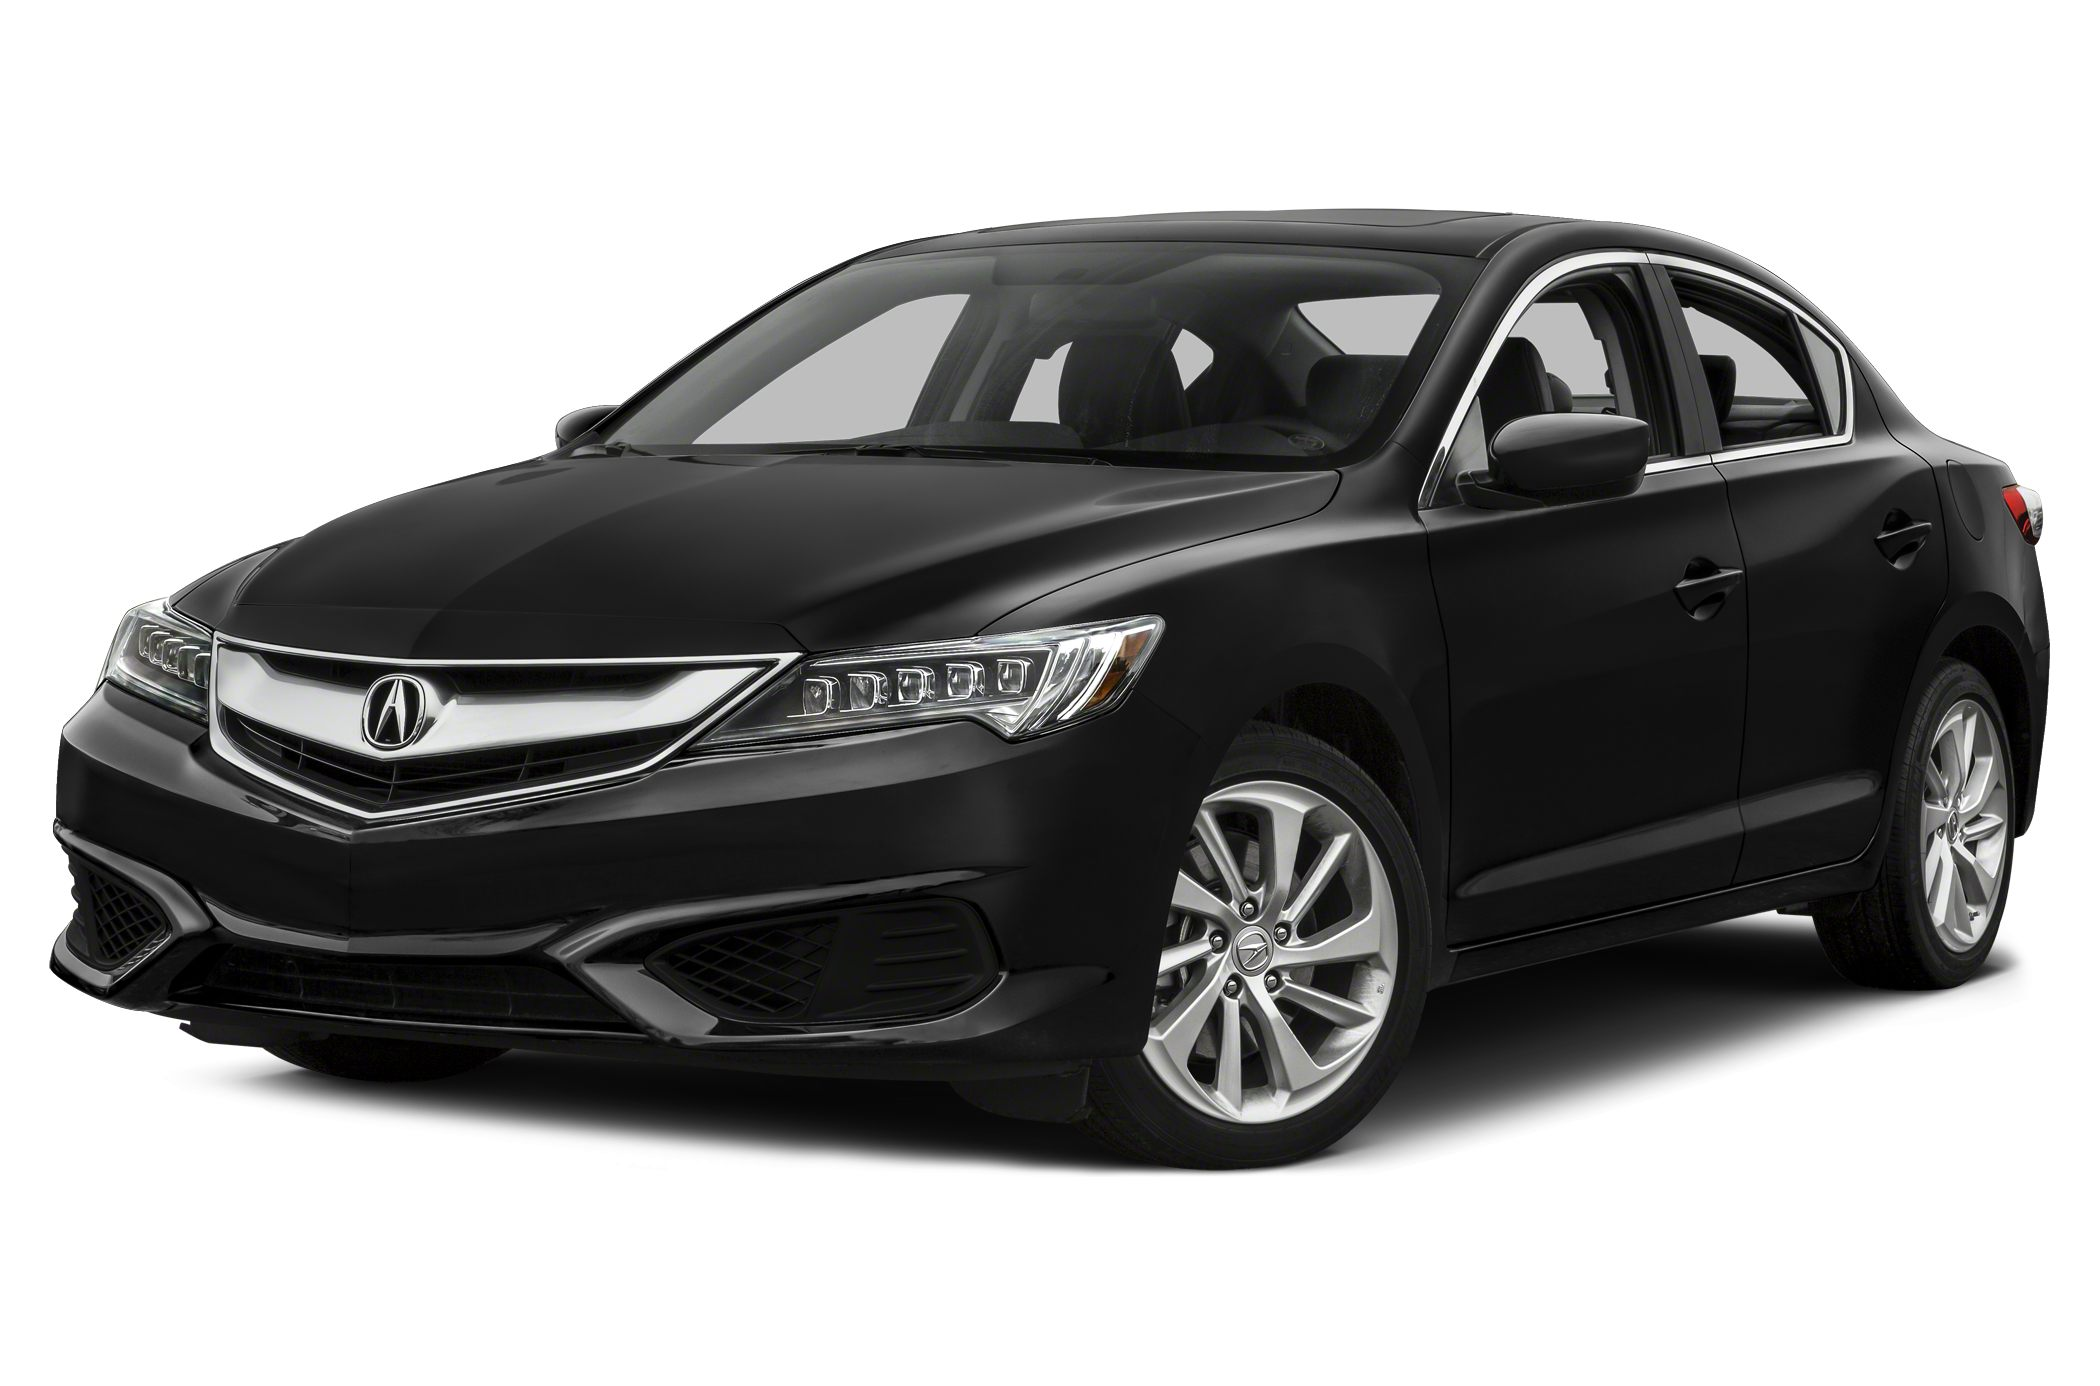 Acura Mdx Lease >> 2016 Acura ILX, for better or worse [UPDATE]